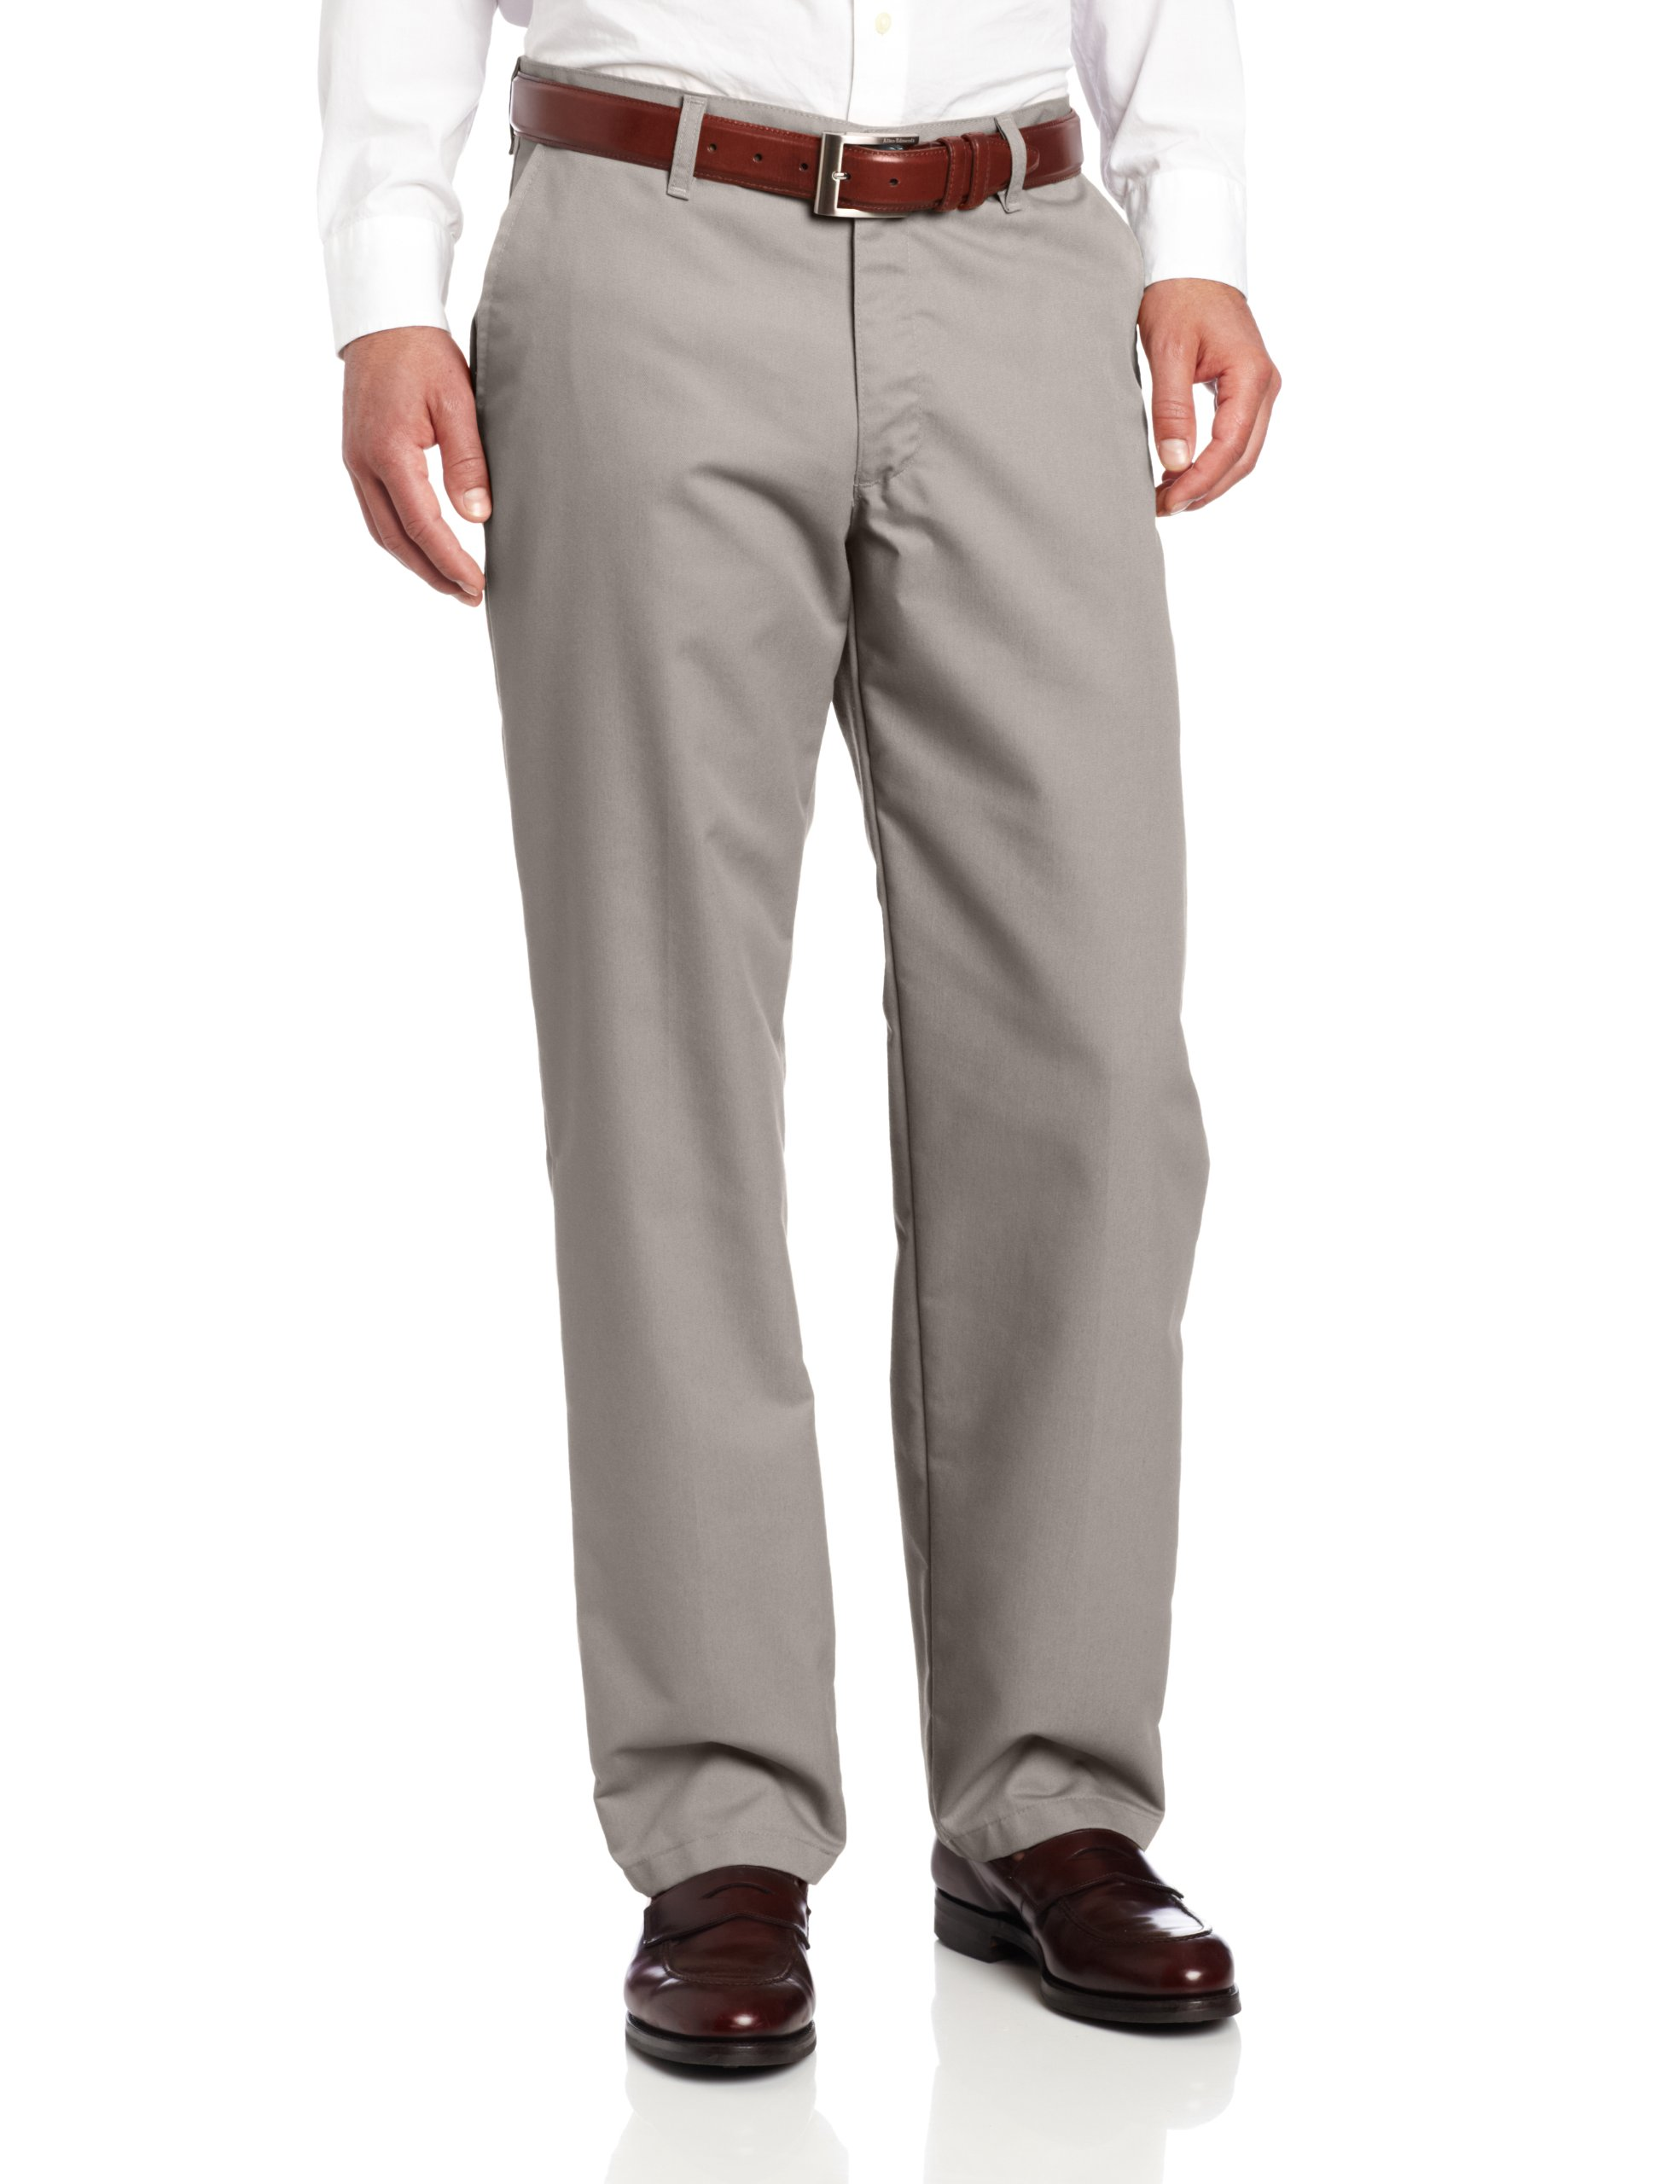 Lee Men's Total Freedom Relaxed Fit Flat Front Pant - 42W x 34L - Gray